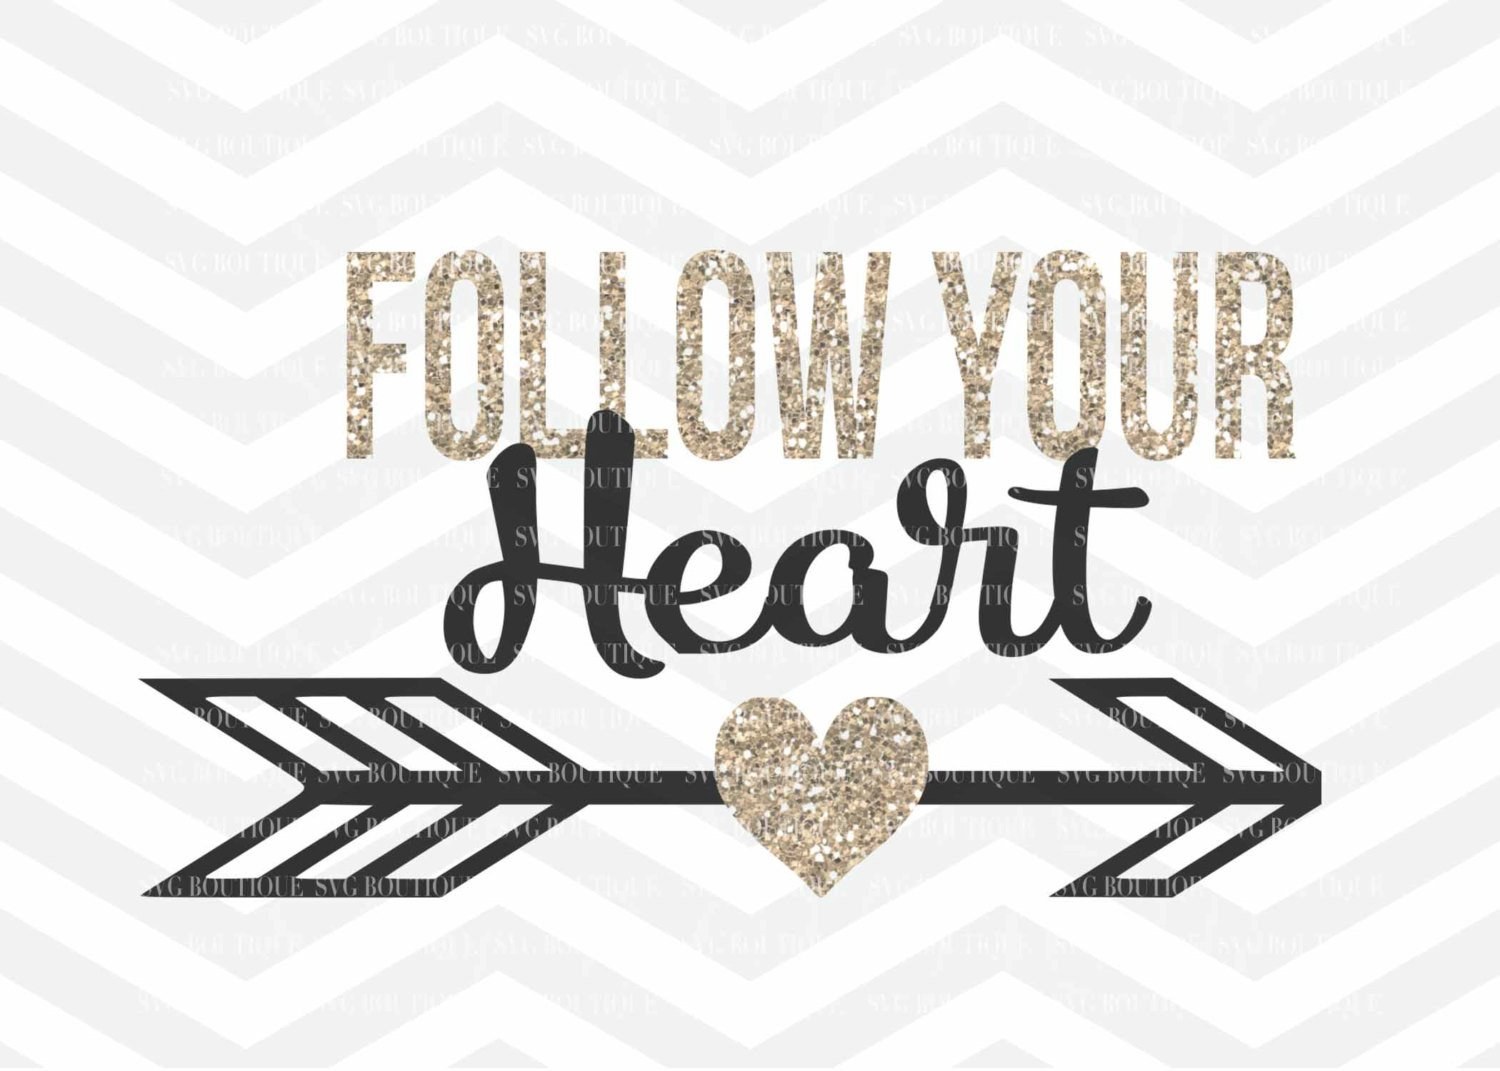 Arrow heart silhouette clipart clip art royalty free library Follow Your Heart SVG File, Motivational Cut File, Arrow Heart, Cutting  File, PNG, Cricut, Silhouette, Cut Files, Clip Art, Quote Overlay - SVG ... clip art royalty free library